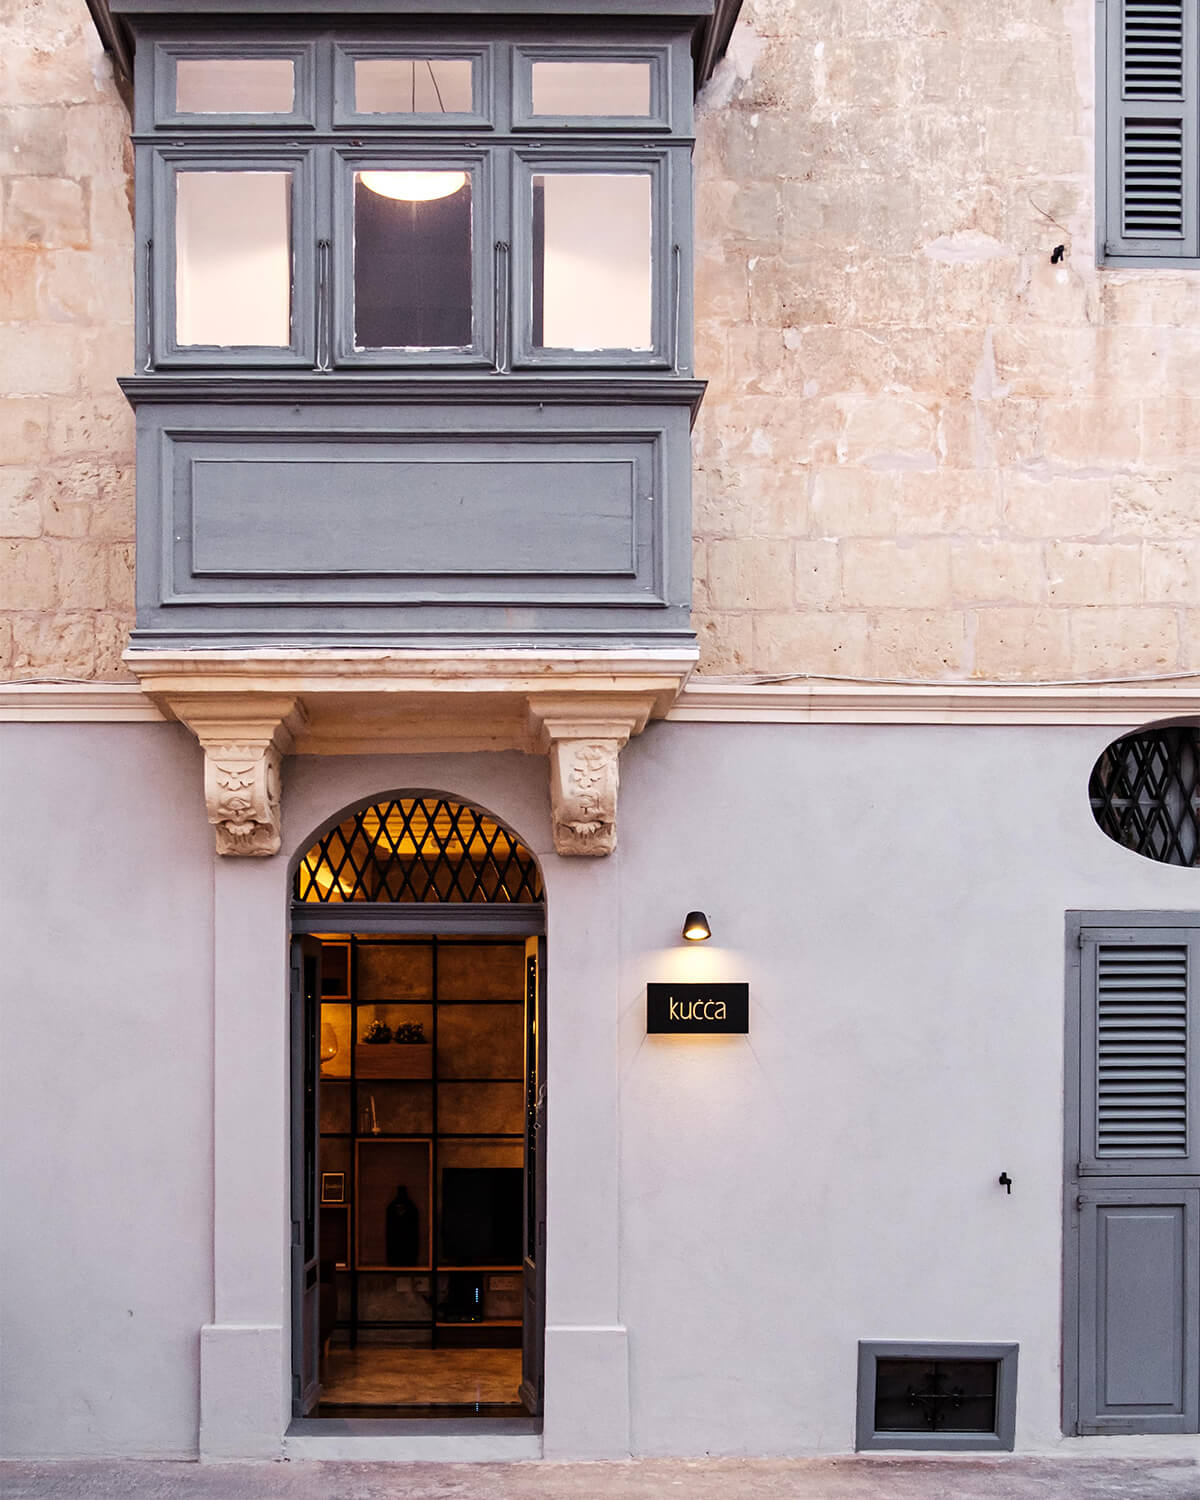 KUCCA Boutique Townhouse, Malta, Europe |